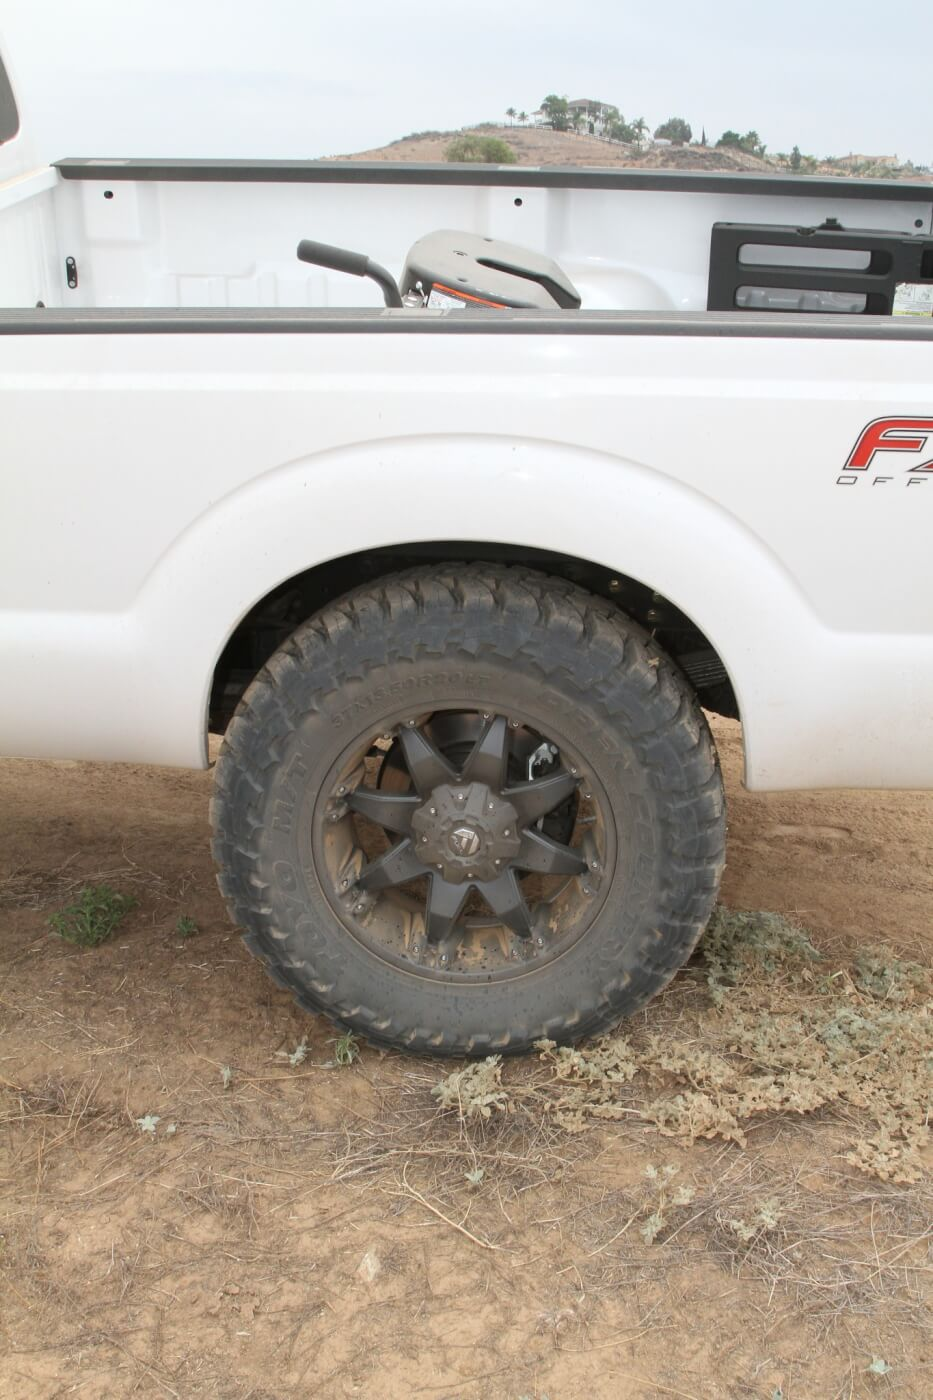 18. This Toyo Open Country AT 37x13.5R20LT fills the rear wheel opening and looks cool mounted on a Fuel 20x9 Octane wheel. Here the suspension on this side is against the rear bump stops. At normal ride height, there's even more clearance around this huge tire.